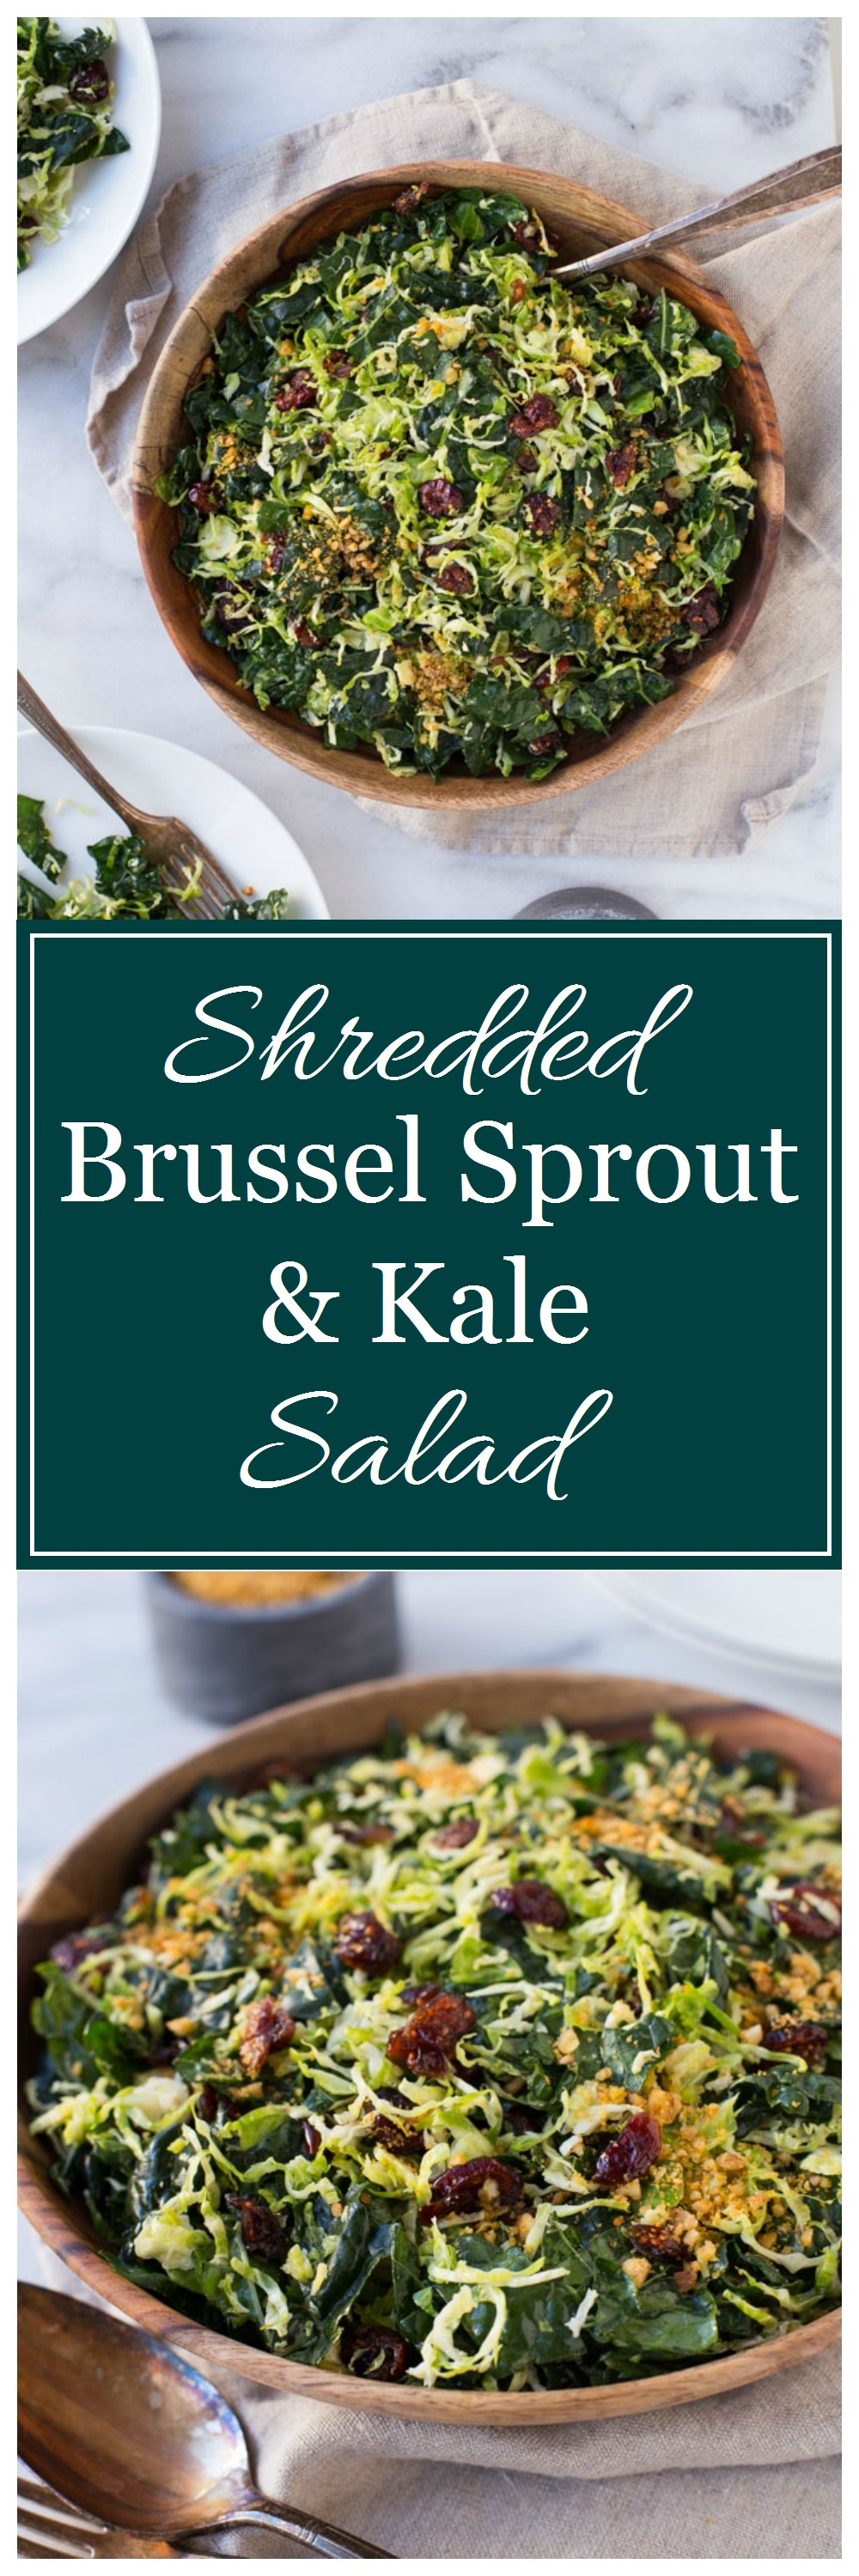 Shredded Brussel Sprout and Kale Salad 180